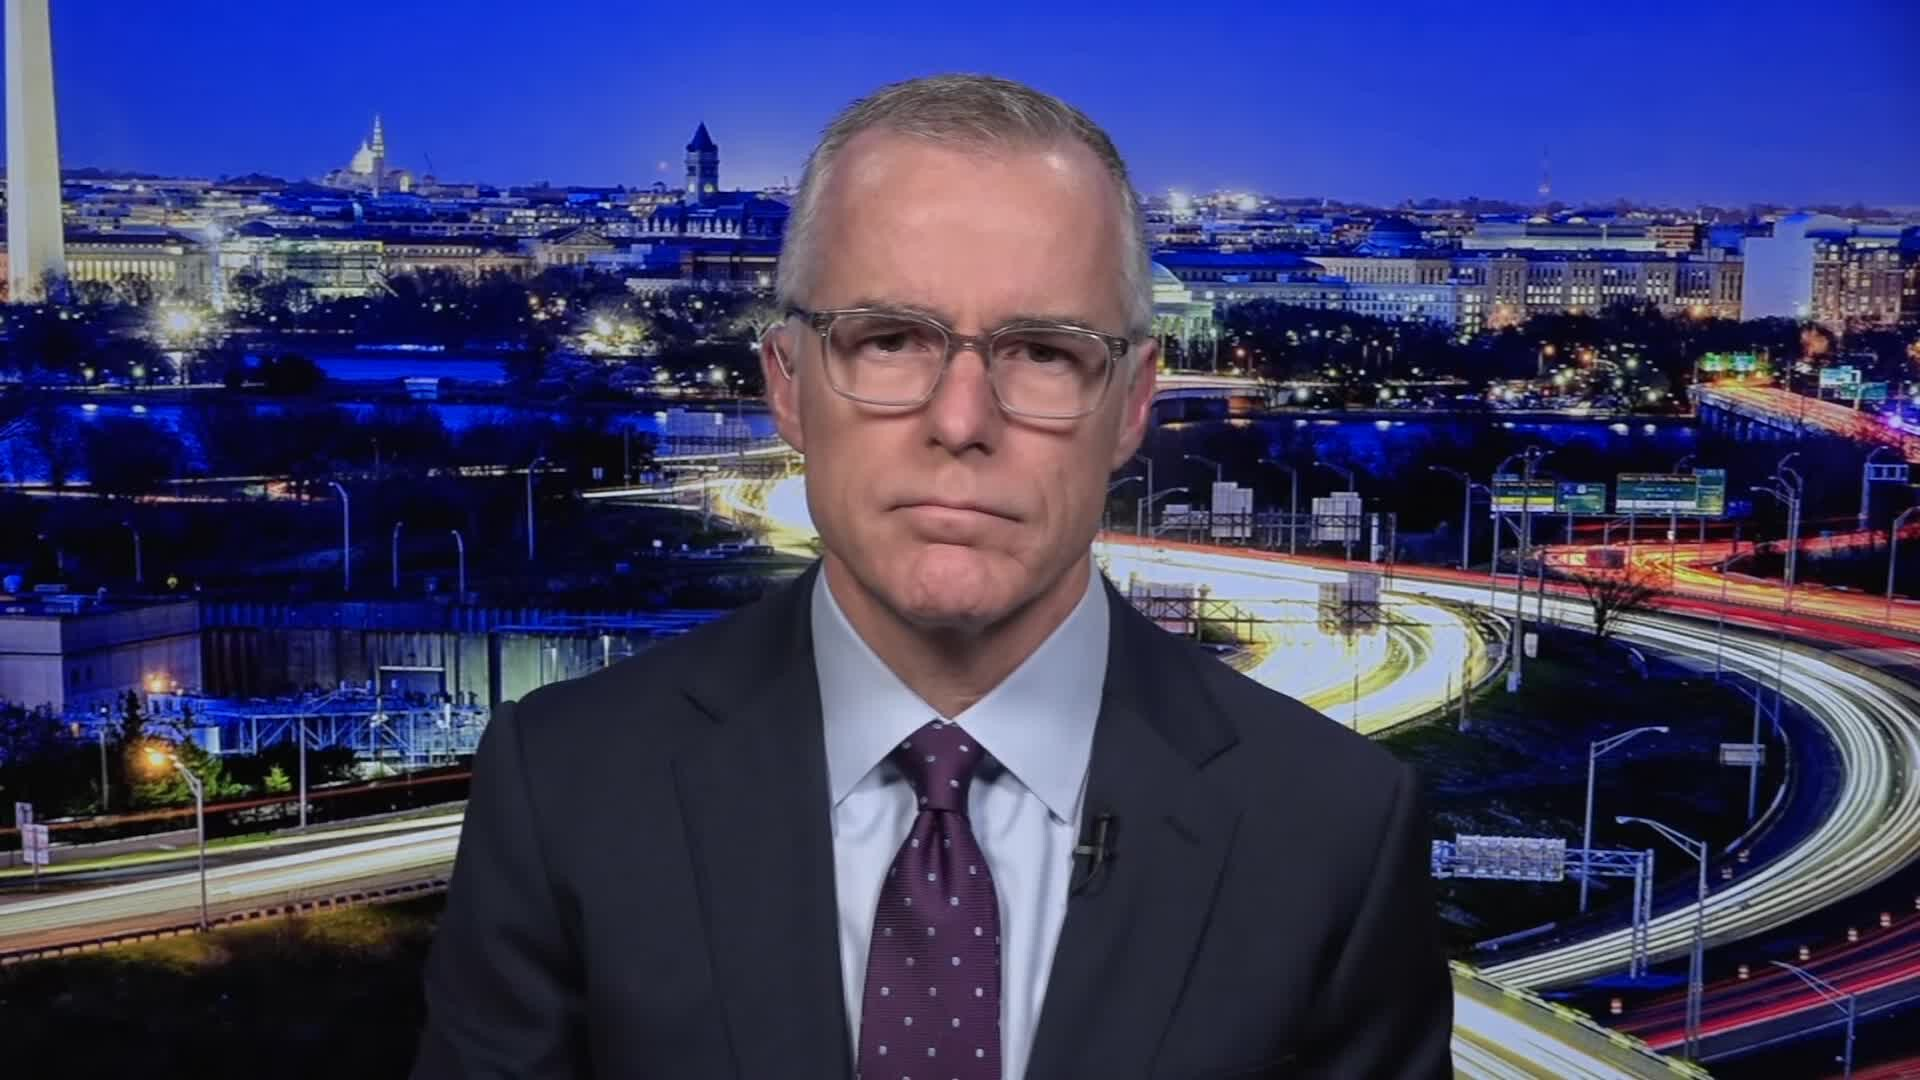 Andrew McCabe, fired by Trump, gets pension back